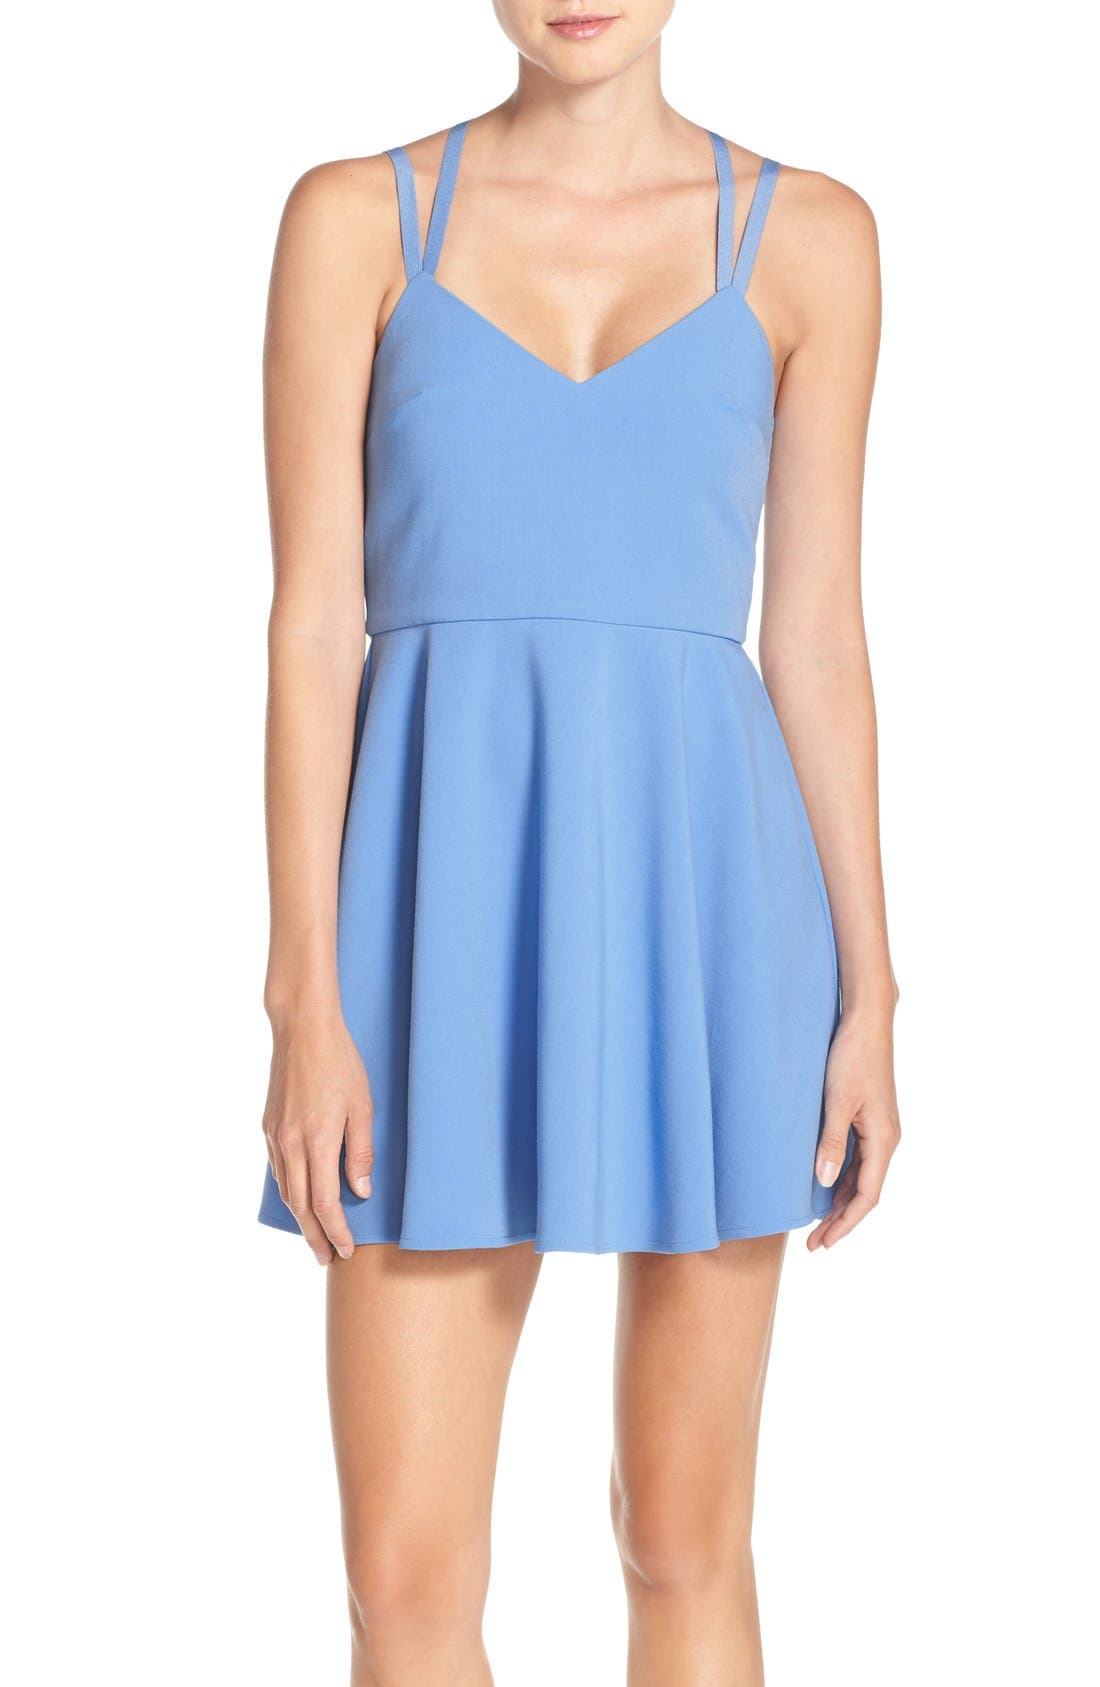 Alternate Image 1 Selected - French Connection 'Whisper' Strappy Skater Dress